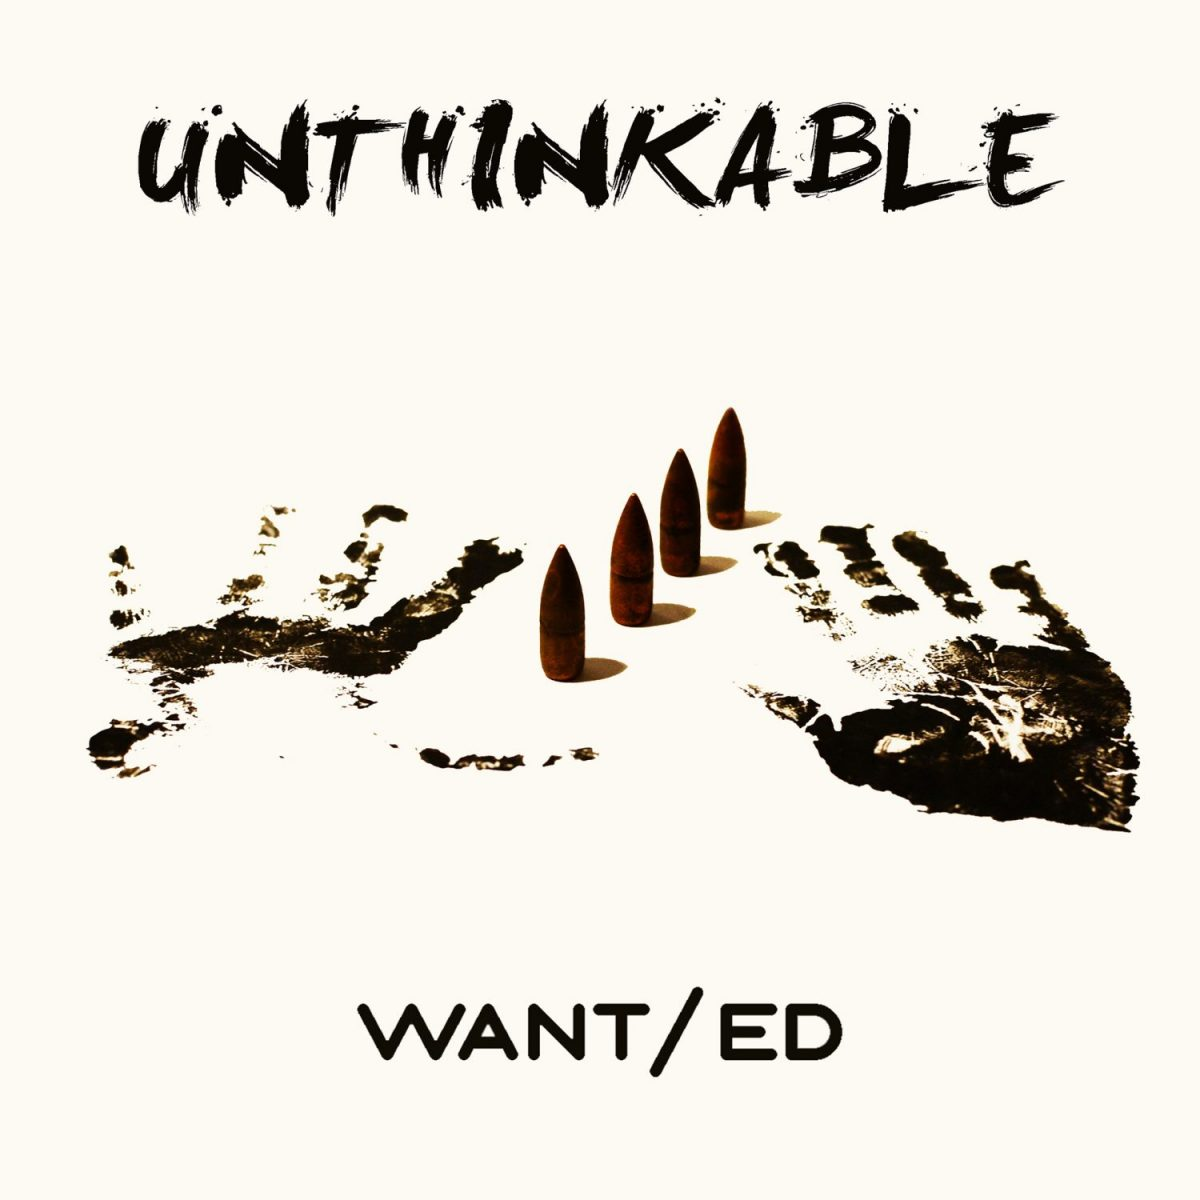 Wanted - Unthinkable